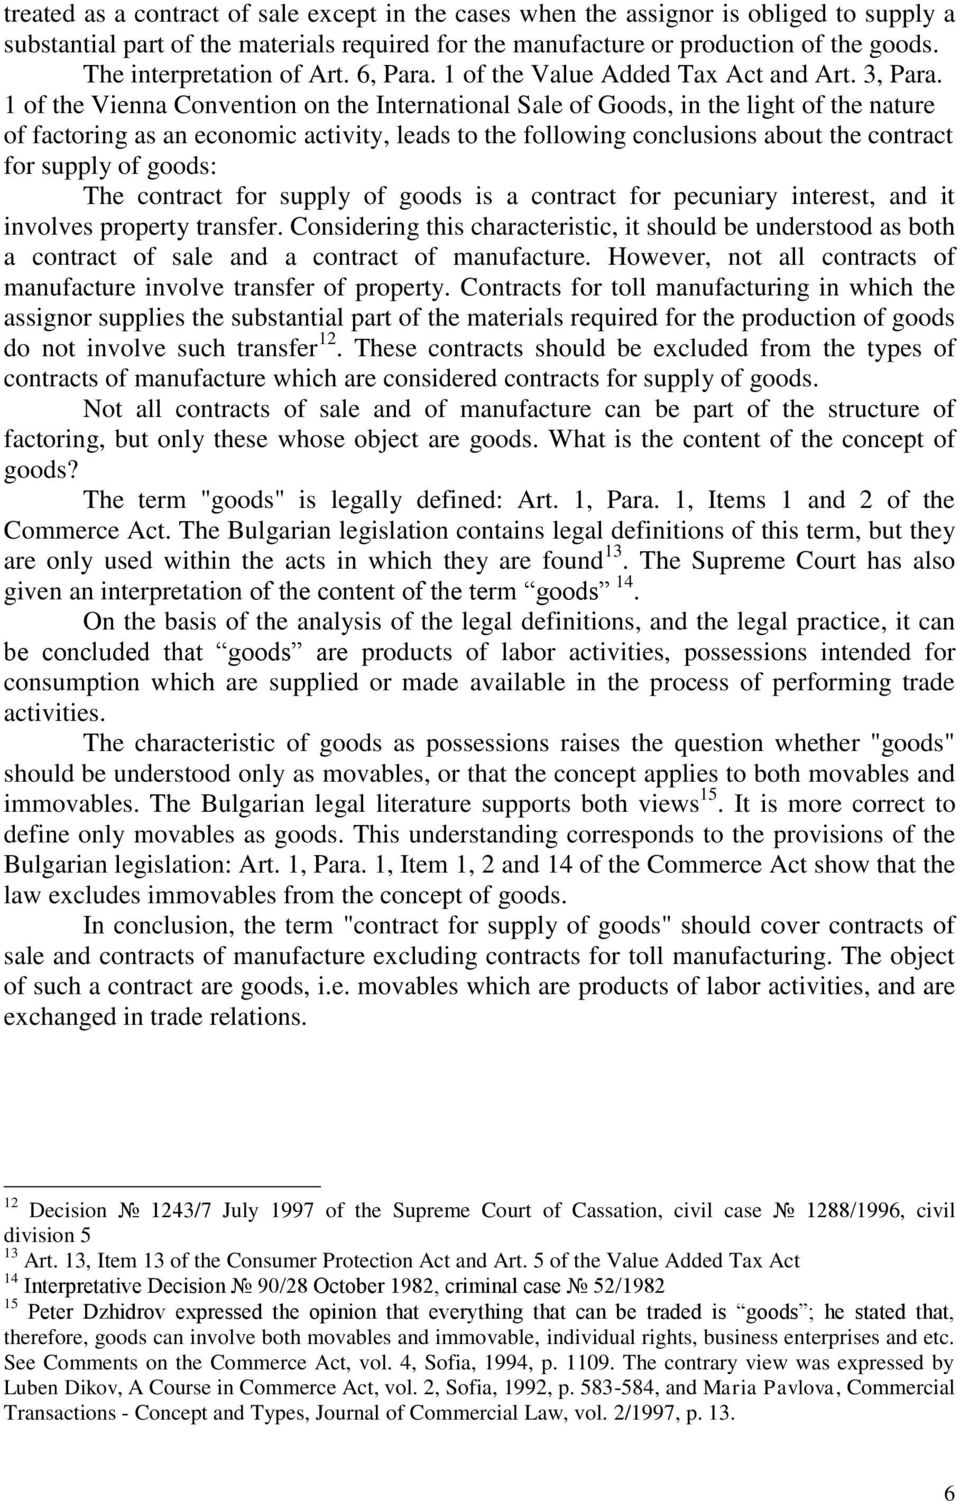 1 of the Vienna Convention on the International Sale of Goods, in the light of the nature of factoring as an economic activity, leads to the following conclusions about the contract for supply of